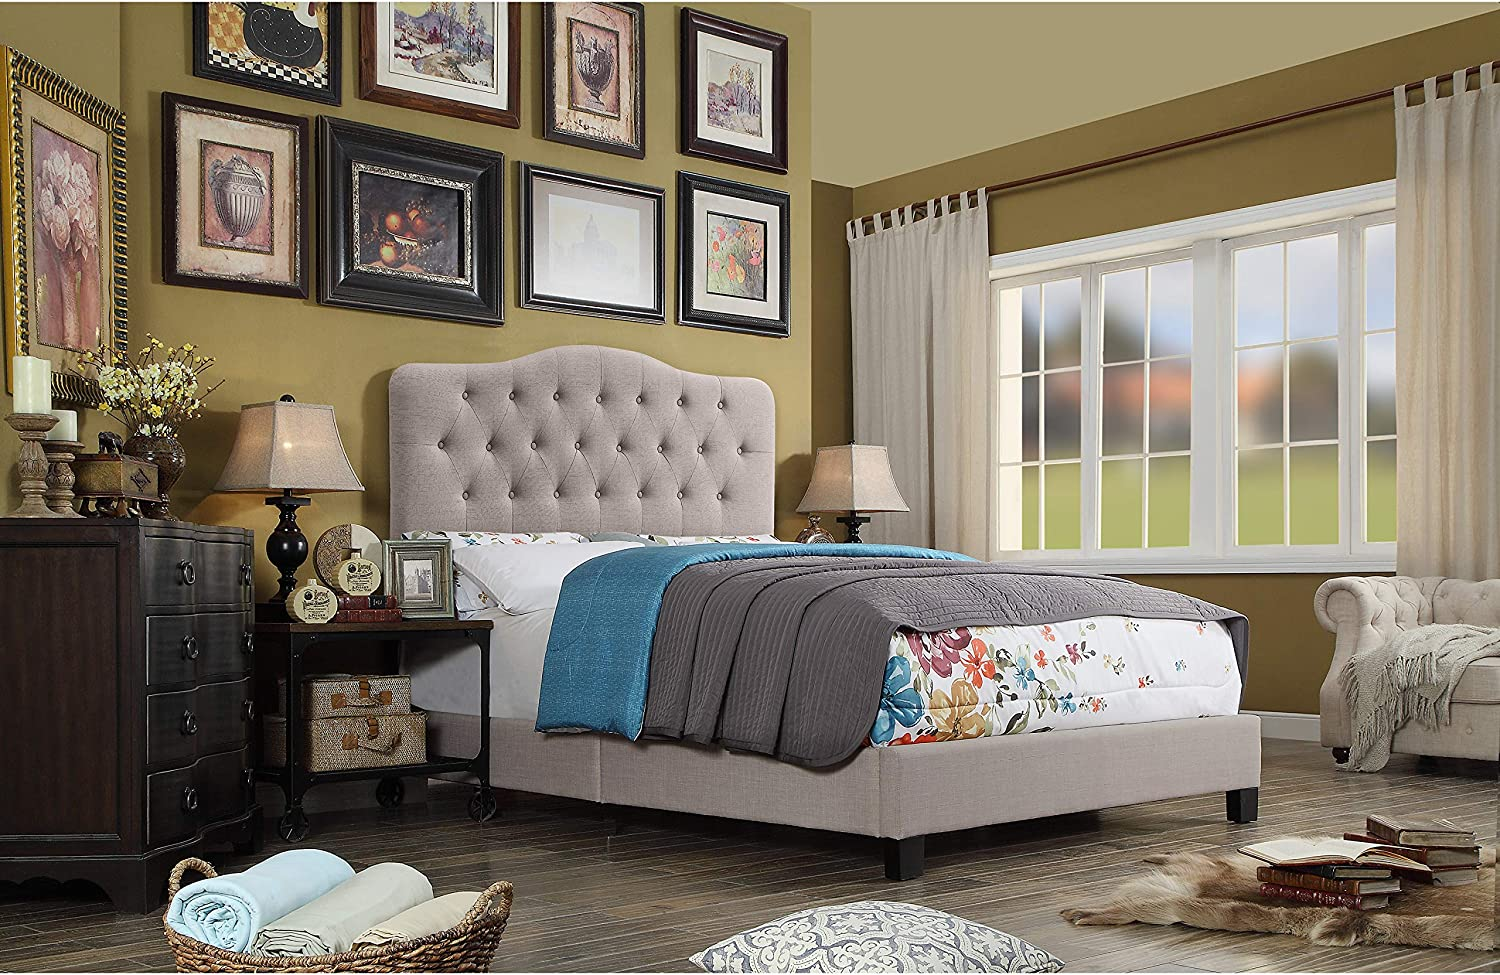 Amazon Com Rosevera Givanna Upholstered Standard With Button Tufting Headboard Queen Beige